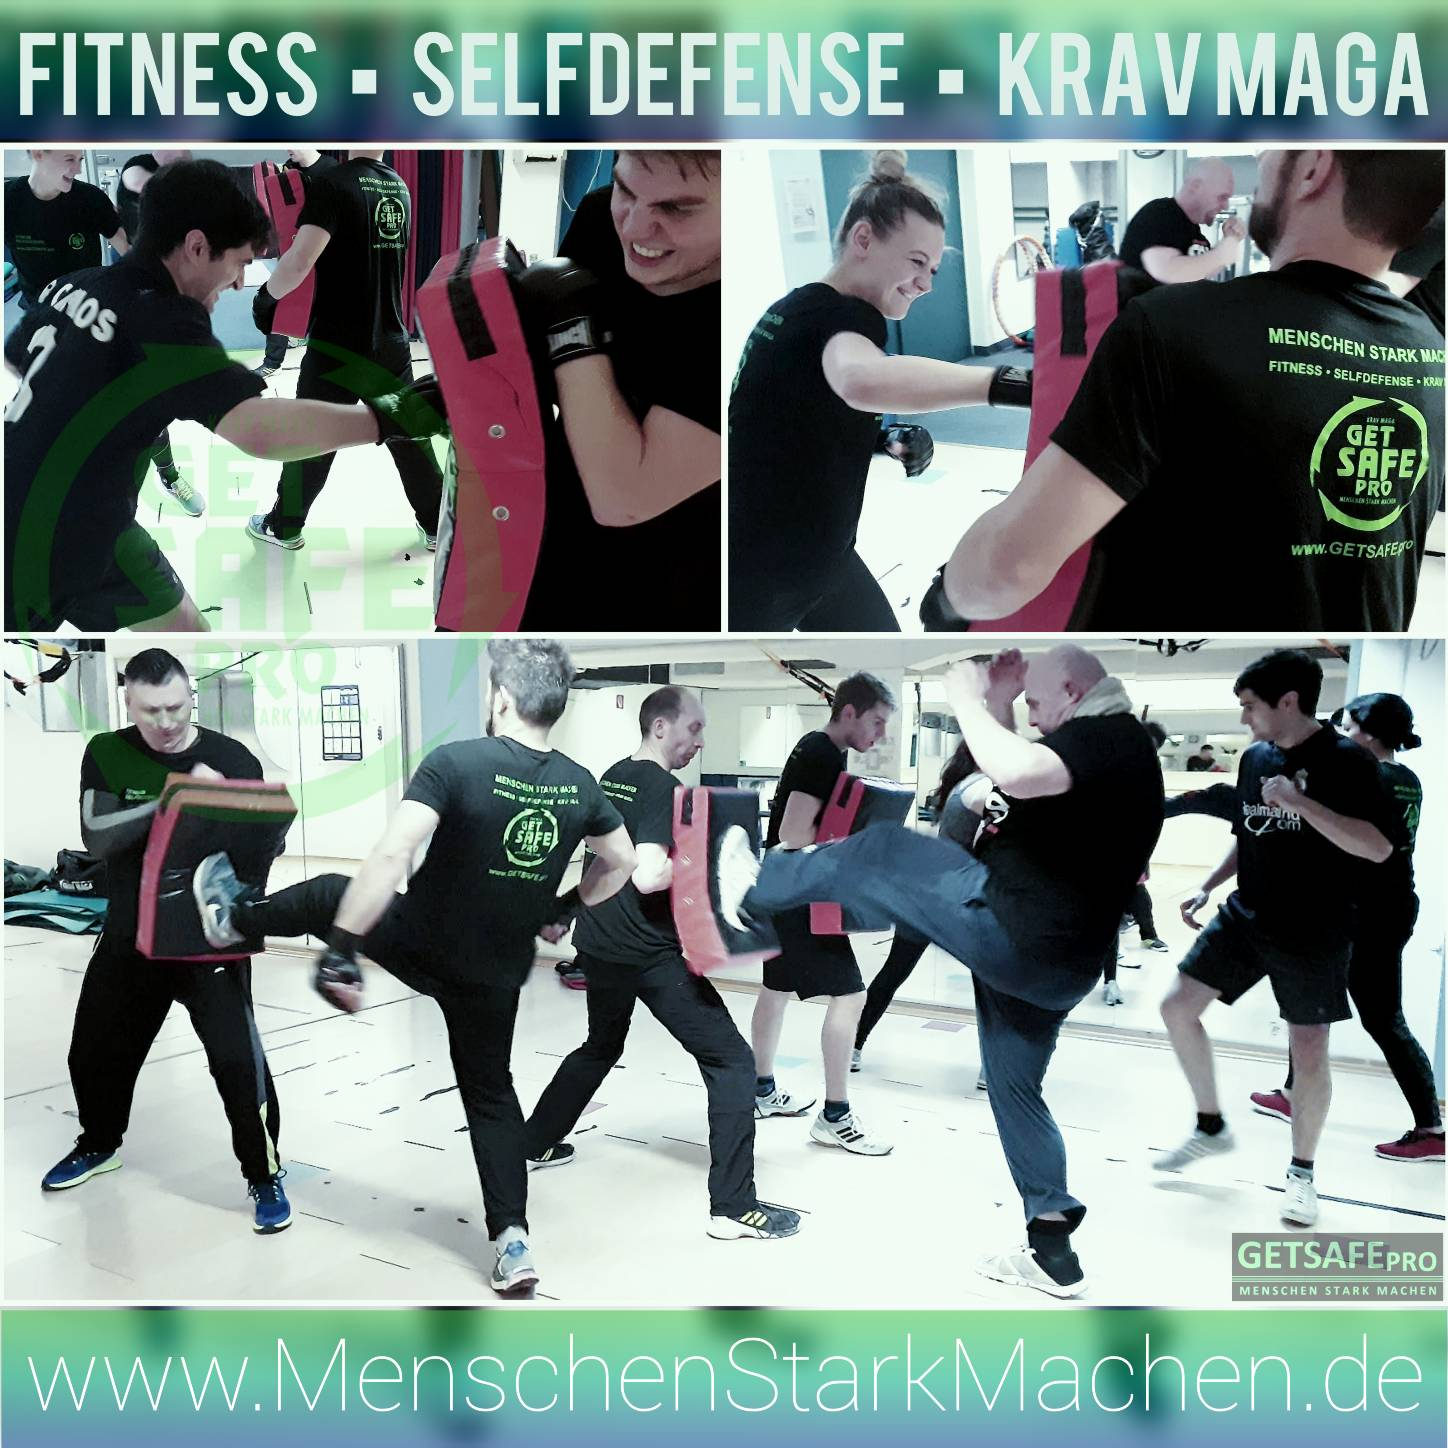 GETSAFEpro Krav Maga Training Mainz Selbstverteidigung Fitness-Center Mainz City (73)